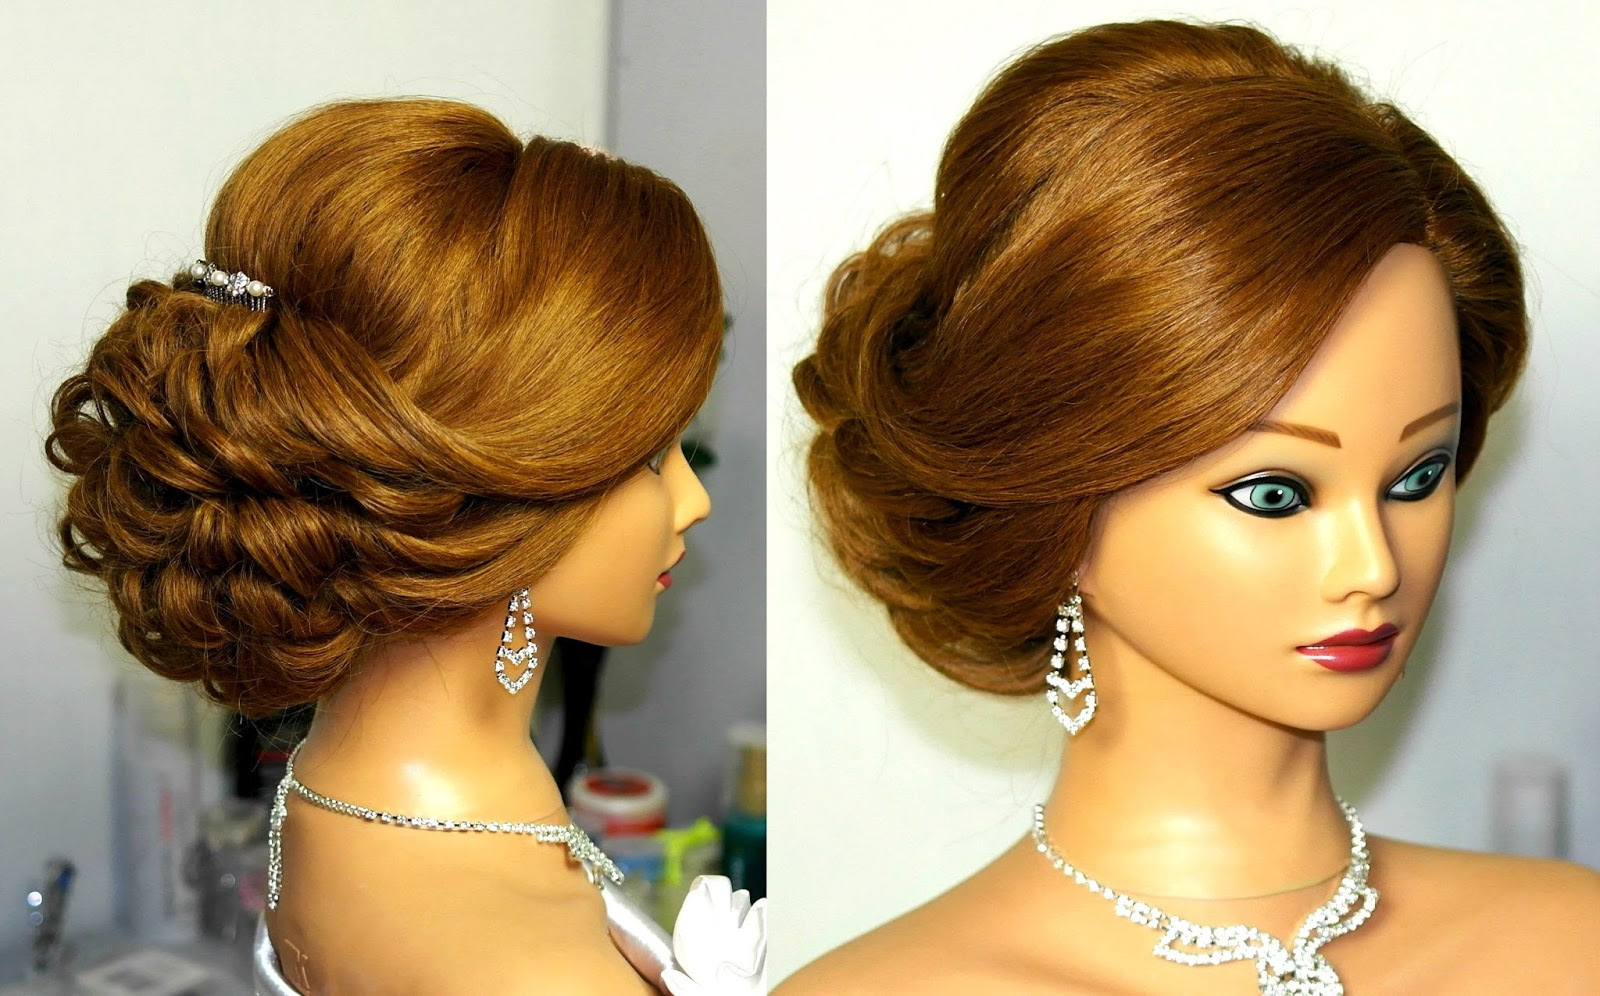 Video Tutorials For Girls Bridal Updo Hairstyle Tutorial